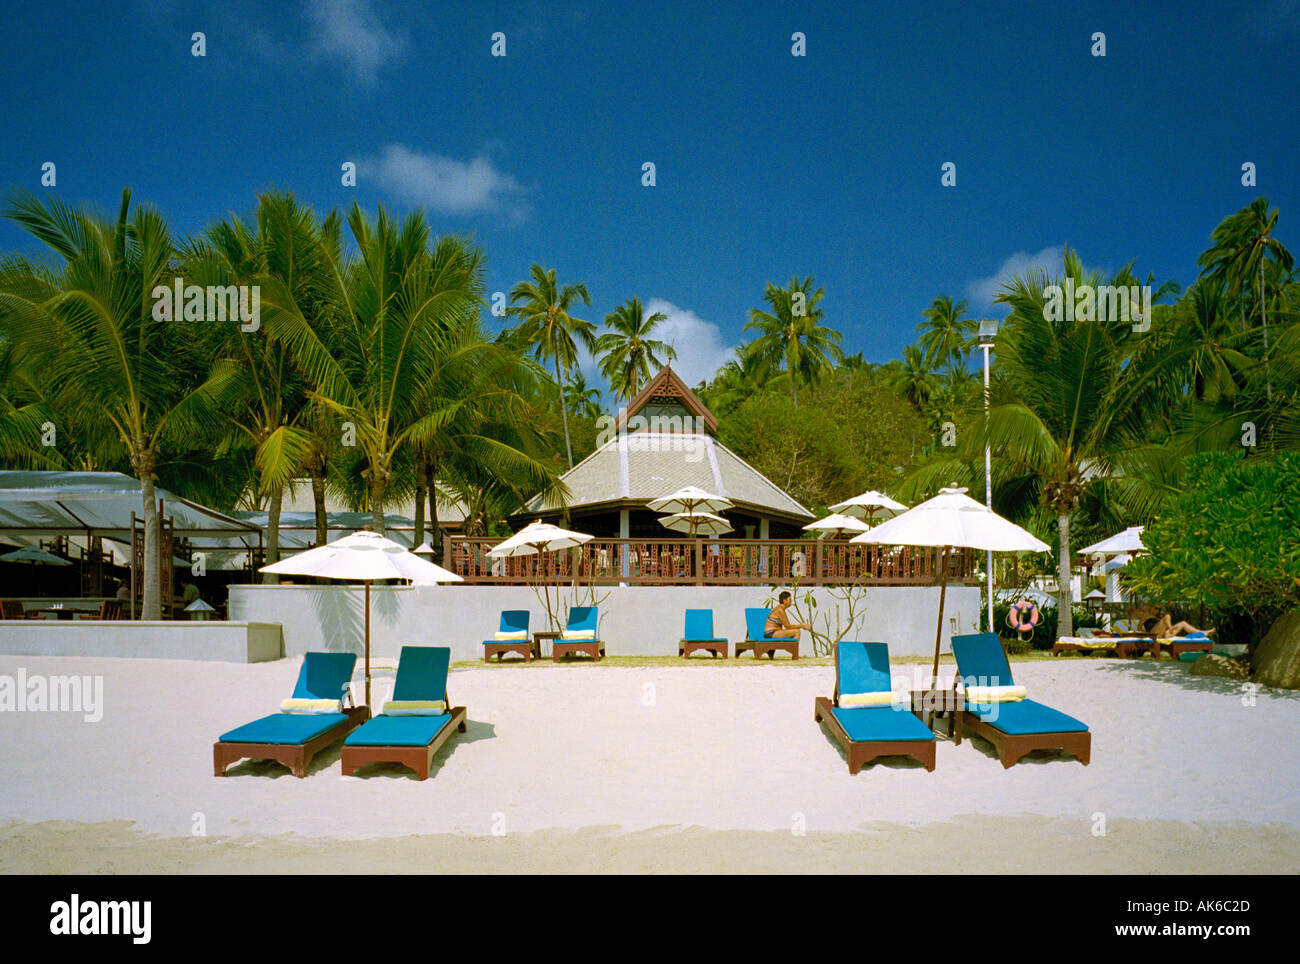 Sun loungers and silver sand at the Central Samui Village hotel on the south east corner of the island of Koh Samui Thailand - Stock Image